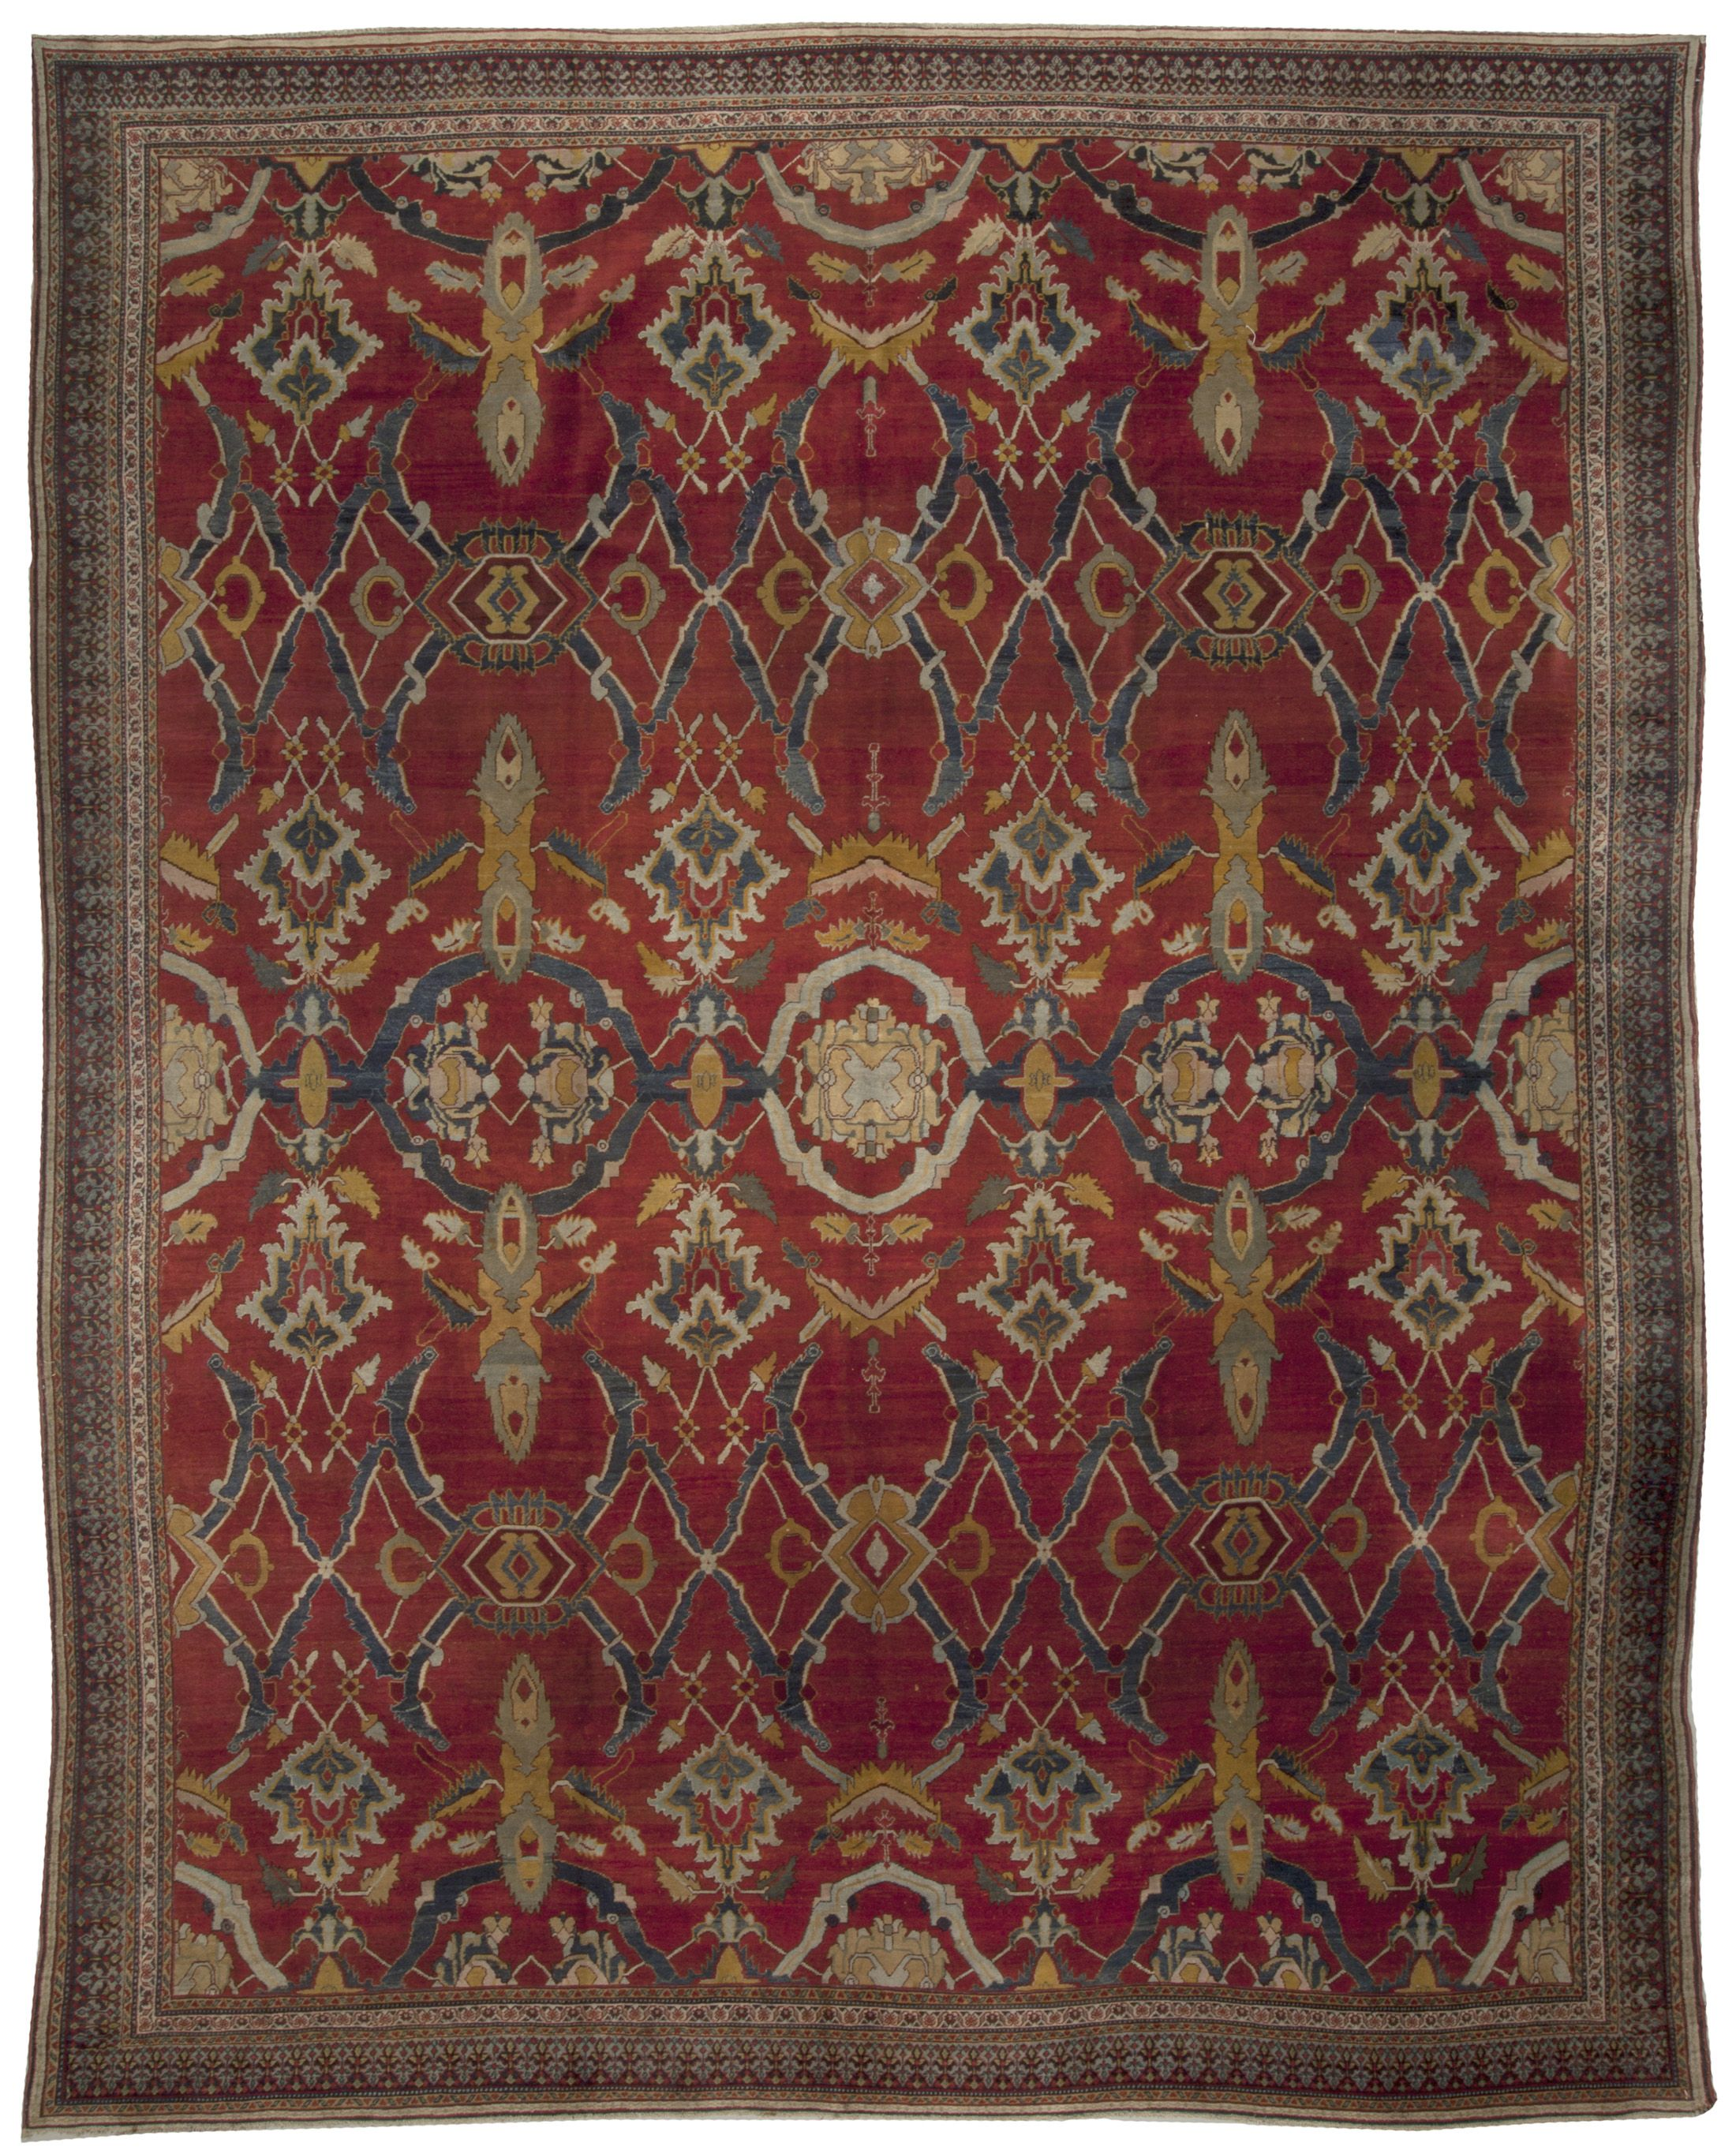 Indian Agra Red Yellow Blue And White Hand Knotted Wool Rug Bb5109 By Dlb Indian Carpet Antique Indian Rug Carpet Sale